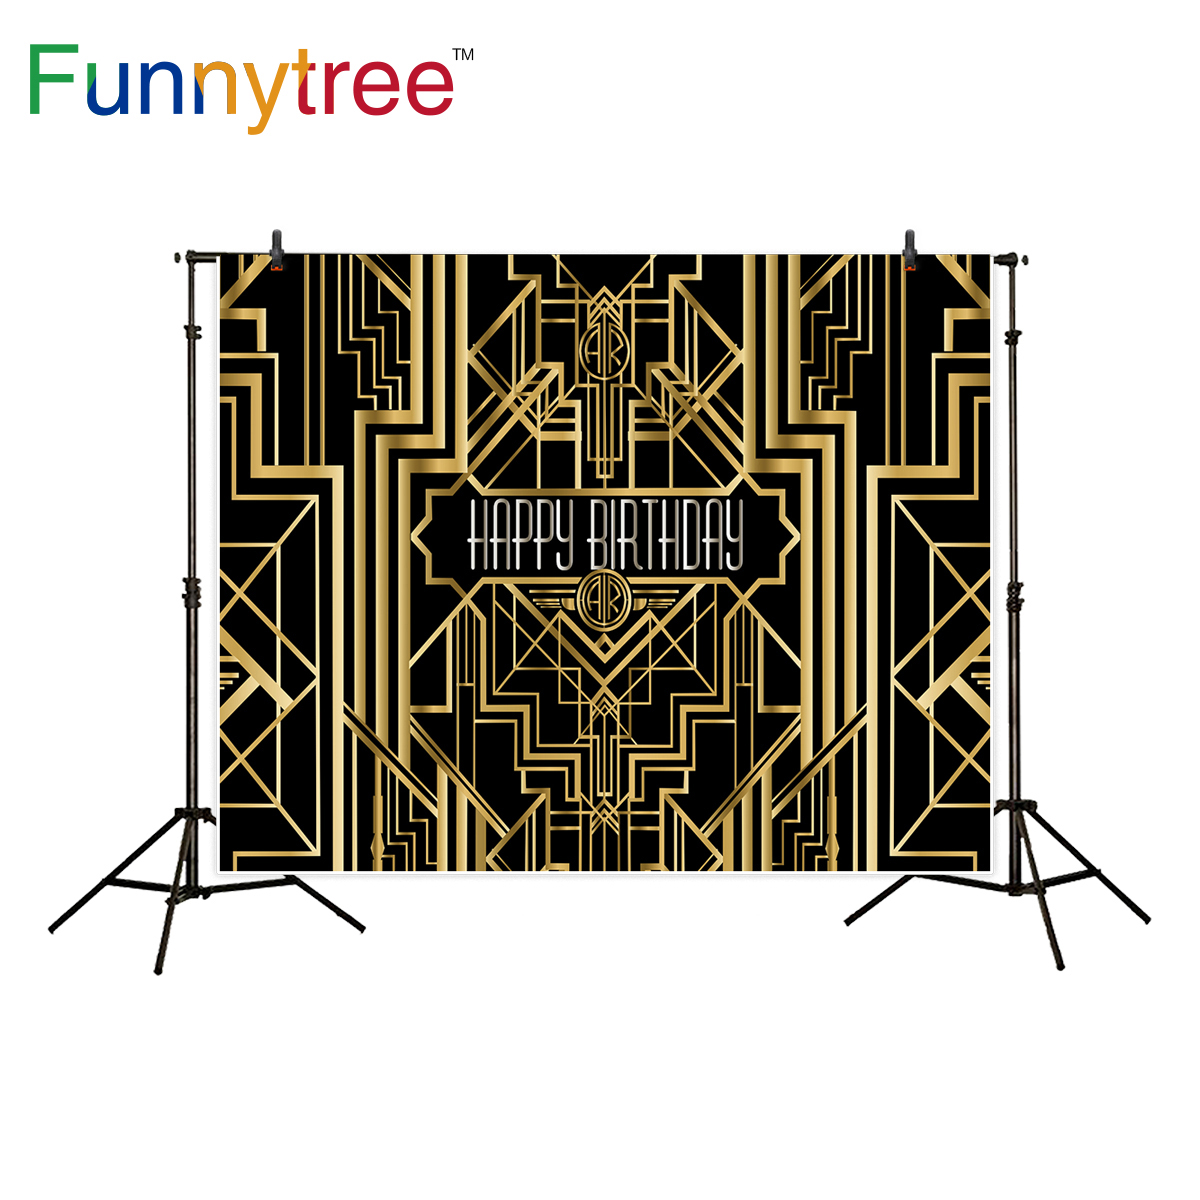 Funnytree photography backdrop Great Gatsby theme birthday party gold and black background photo studio photocall new photo prop photography children s background birthday cake gift present greeting photocall customize cute studio photo prop